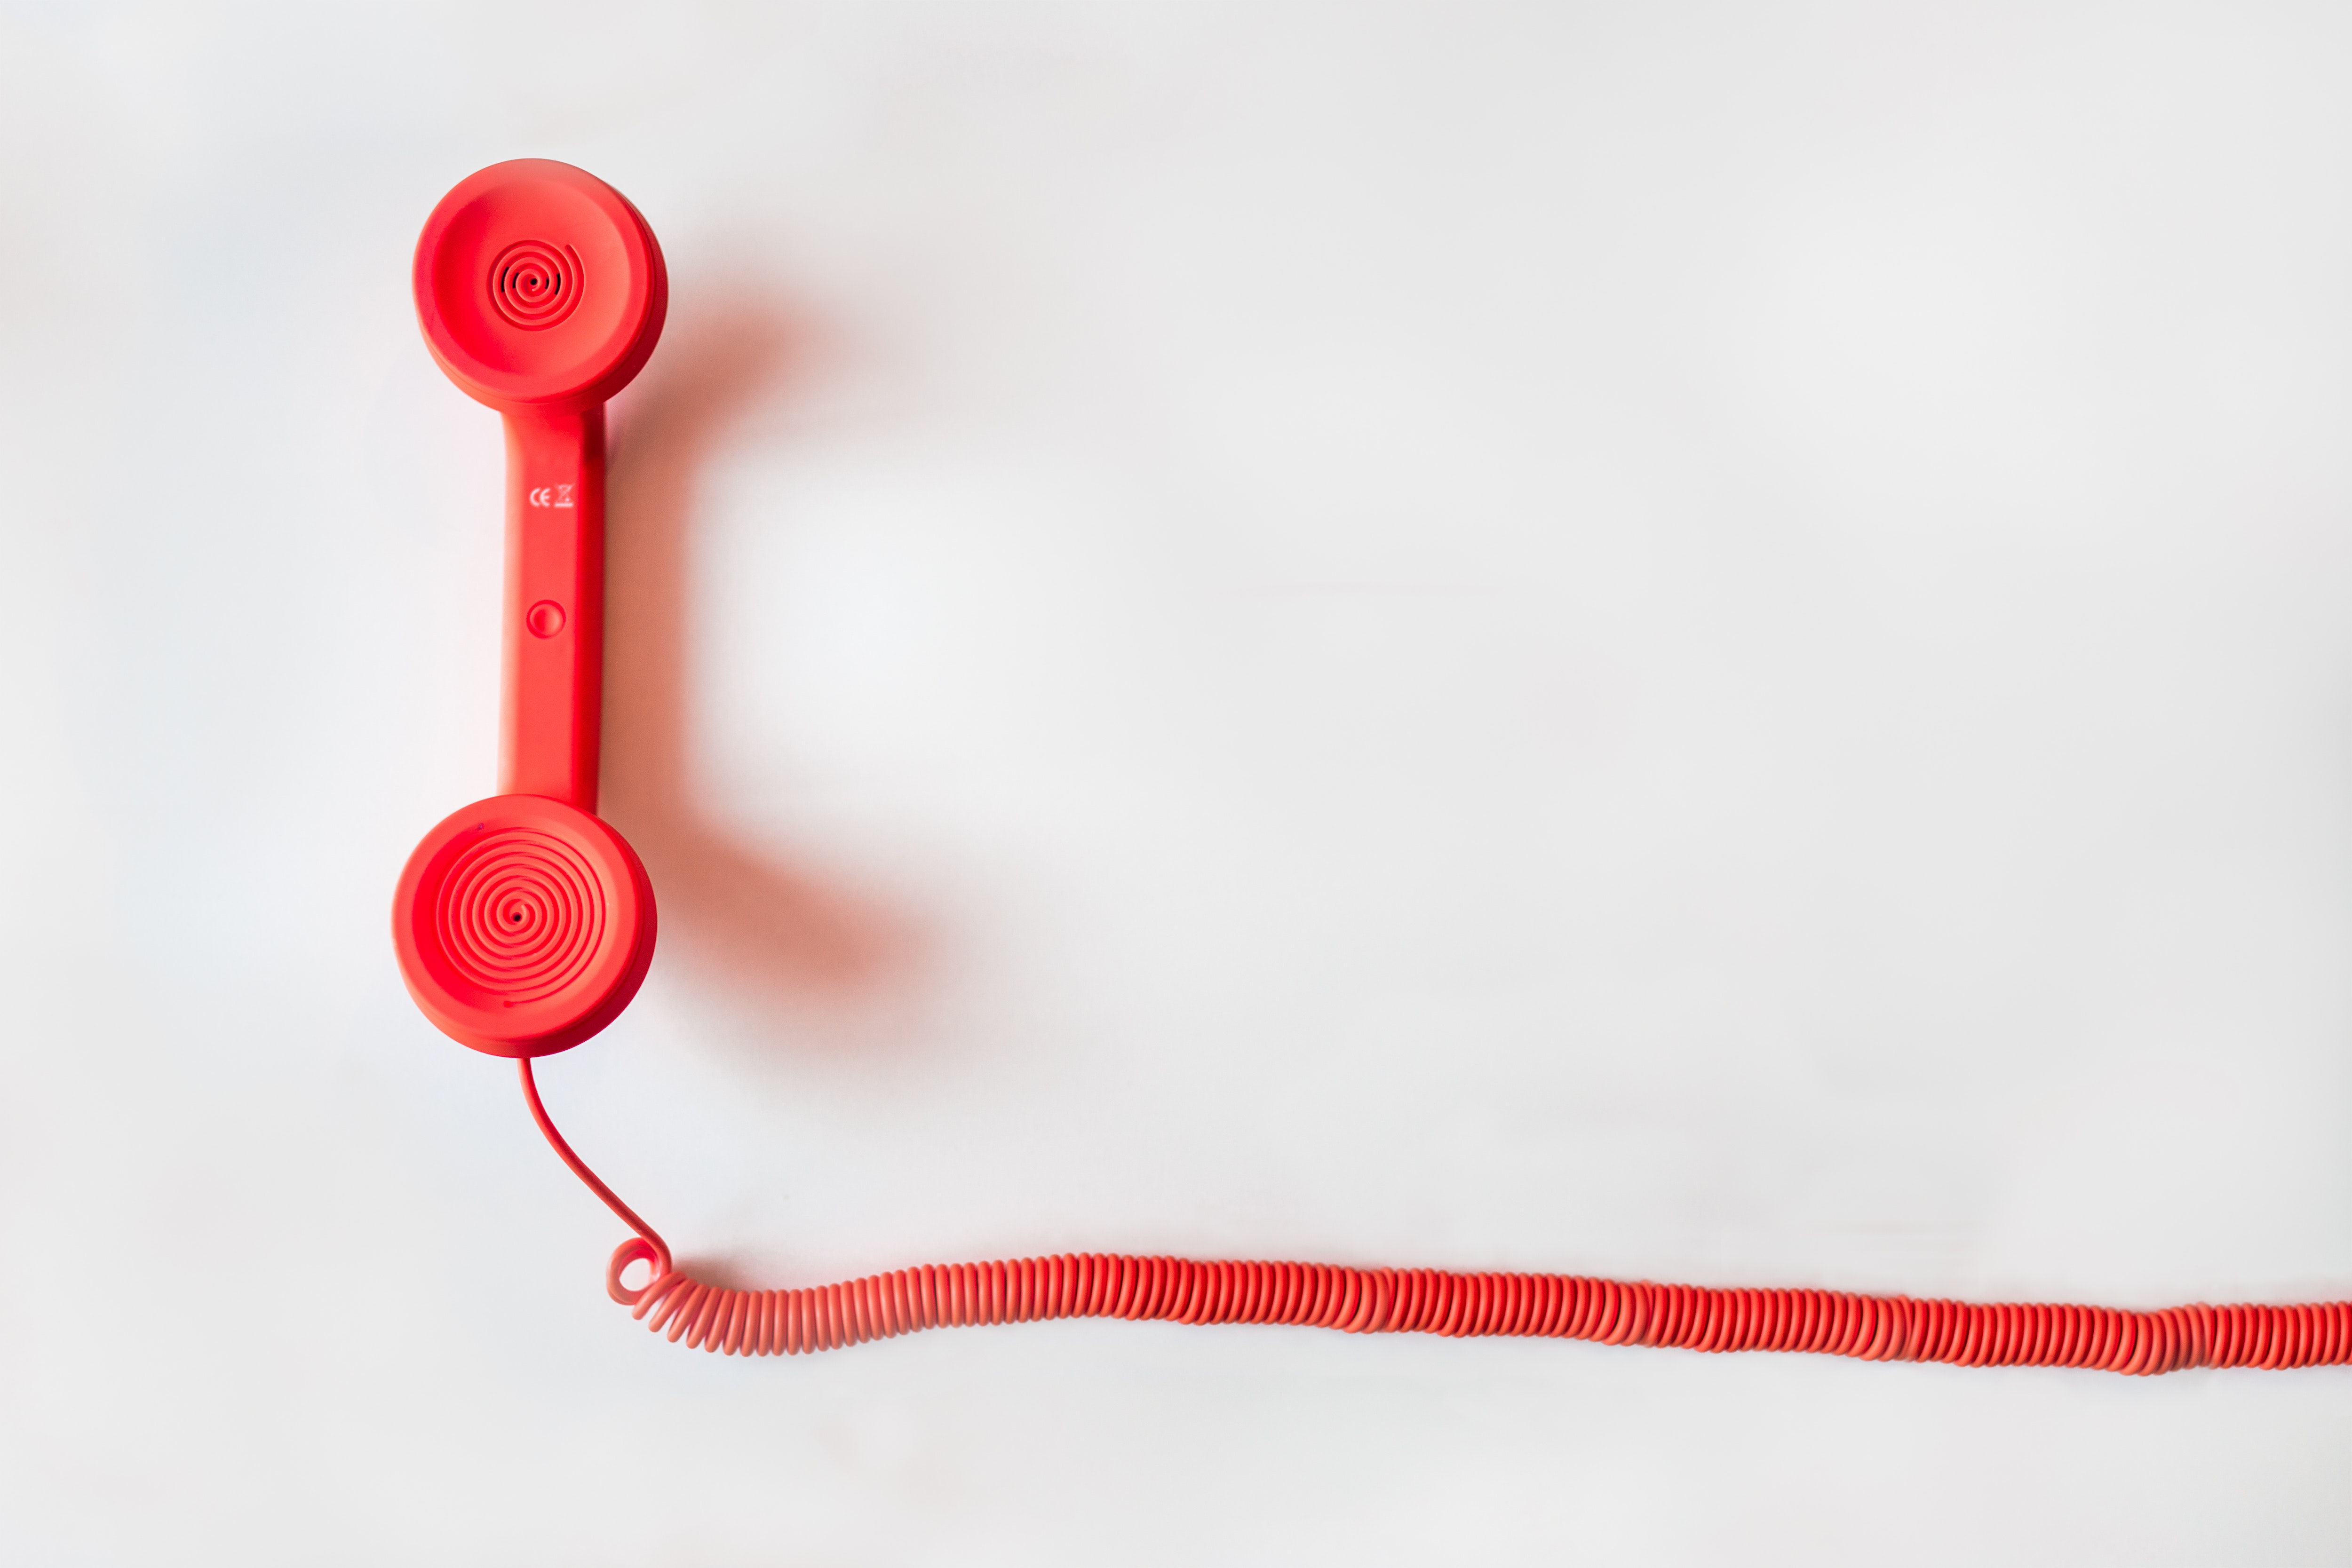 Red, wired telephone.